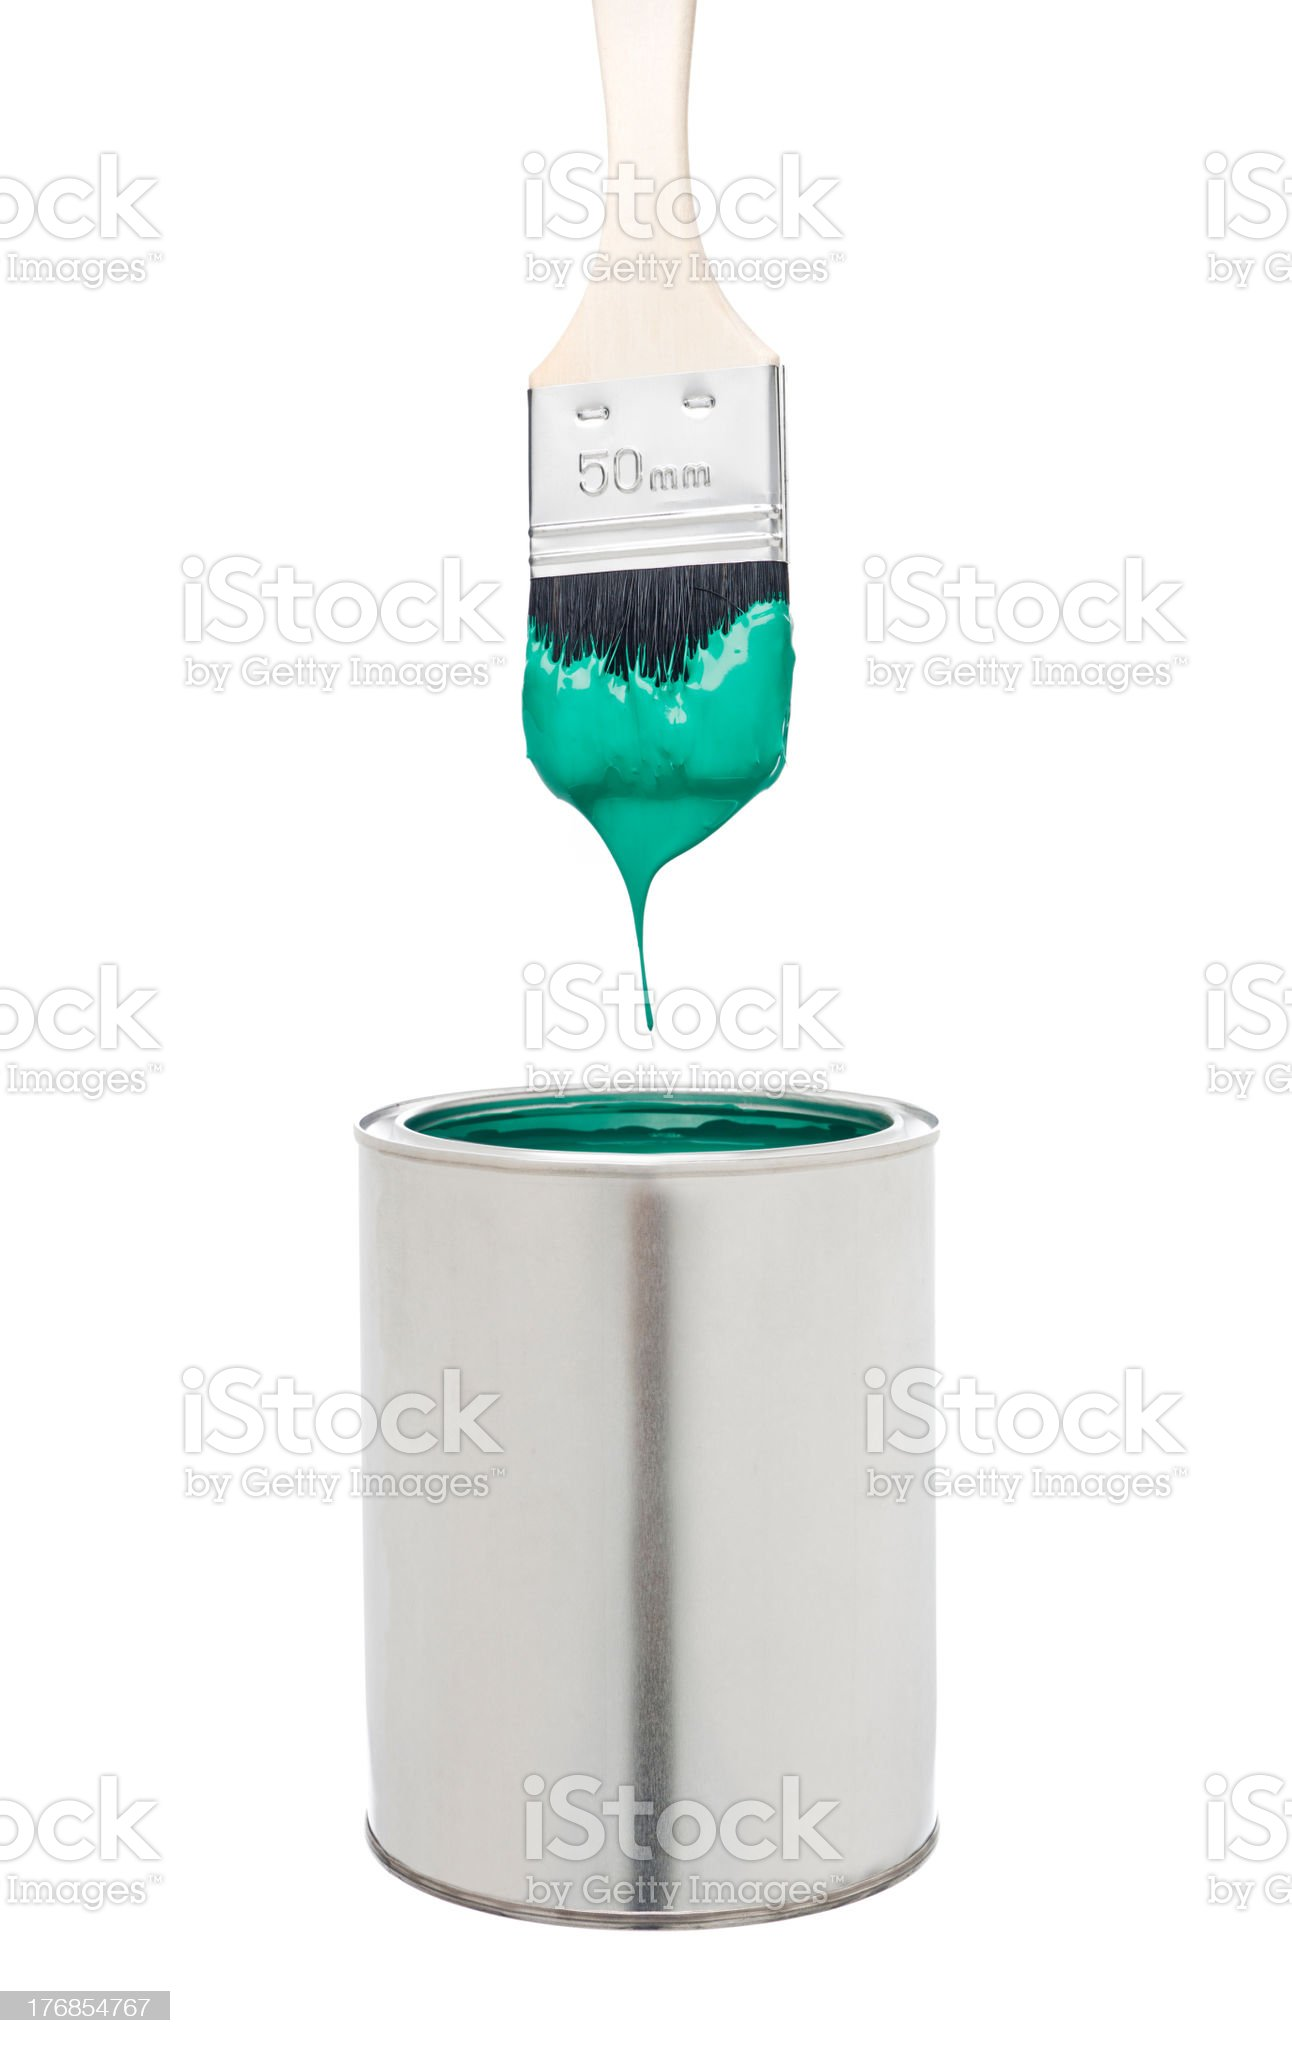 Green Paint Brush and Can royalty-free stock photo